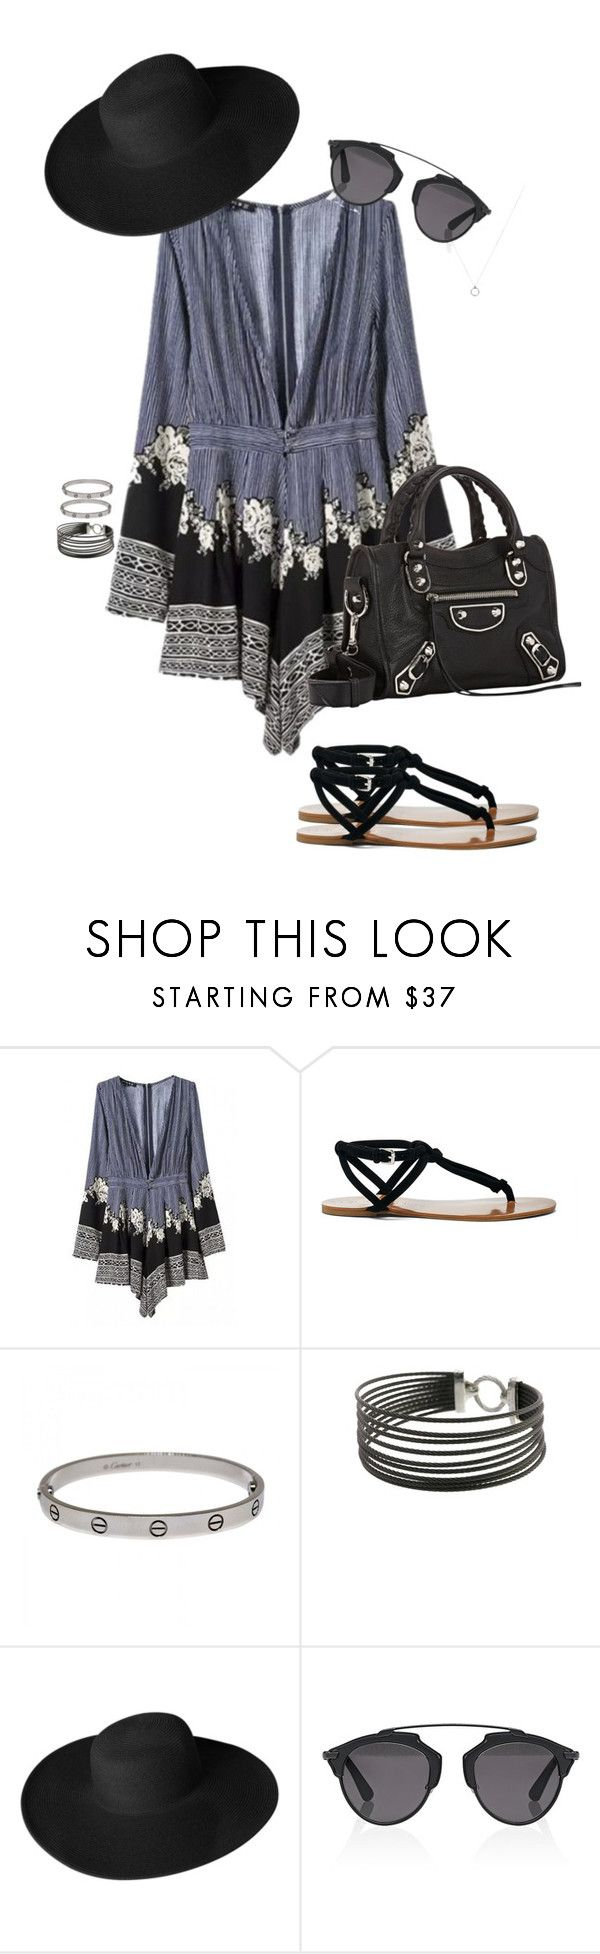 """""""Gemini"""" by ccoss on Polyvore featuring WithChic, Sole Society, Cartier, Charriol, Dorfman Pacific, Christian Dior, Balenciaga, fashionhoroscope and stylehoroscope"""